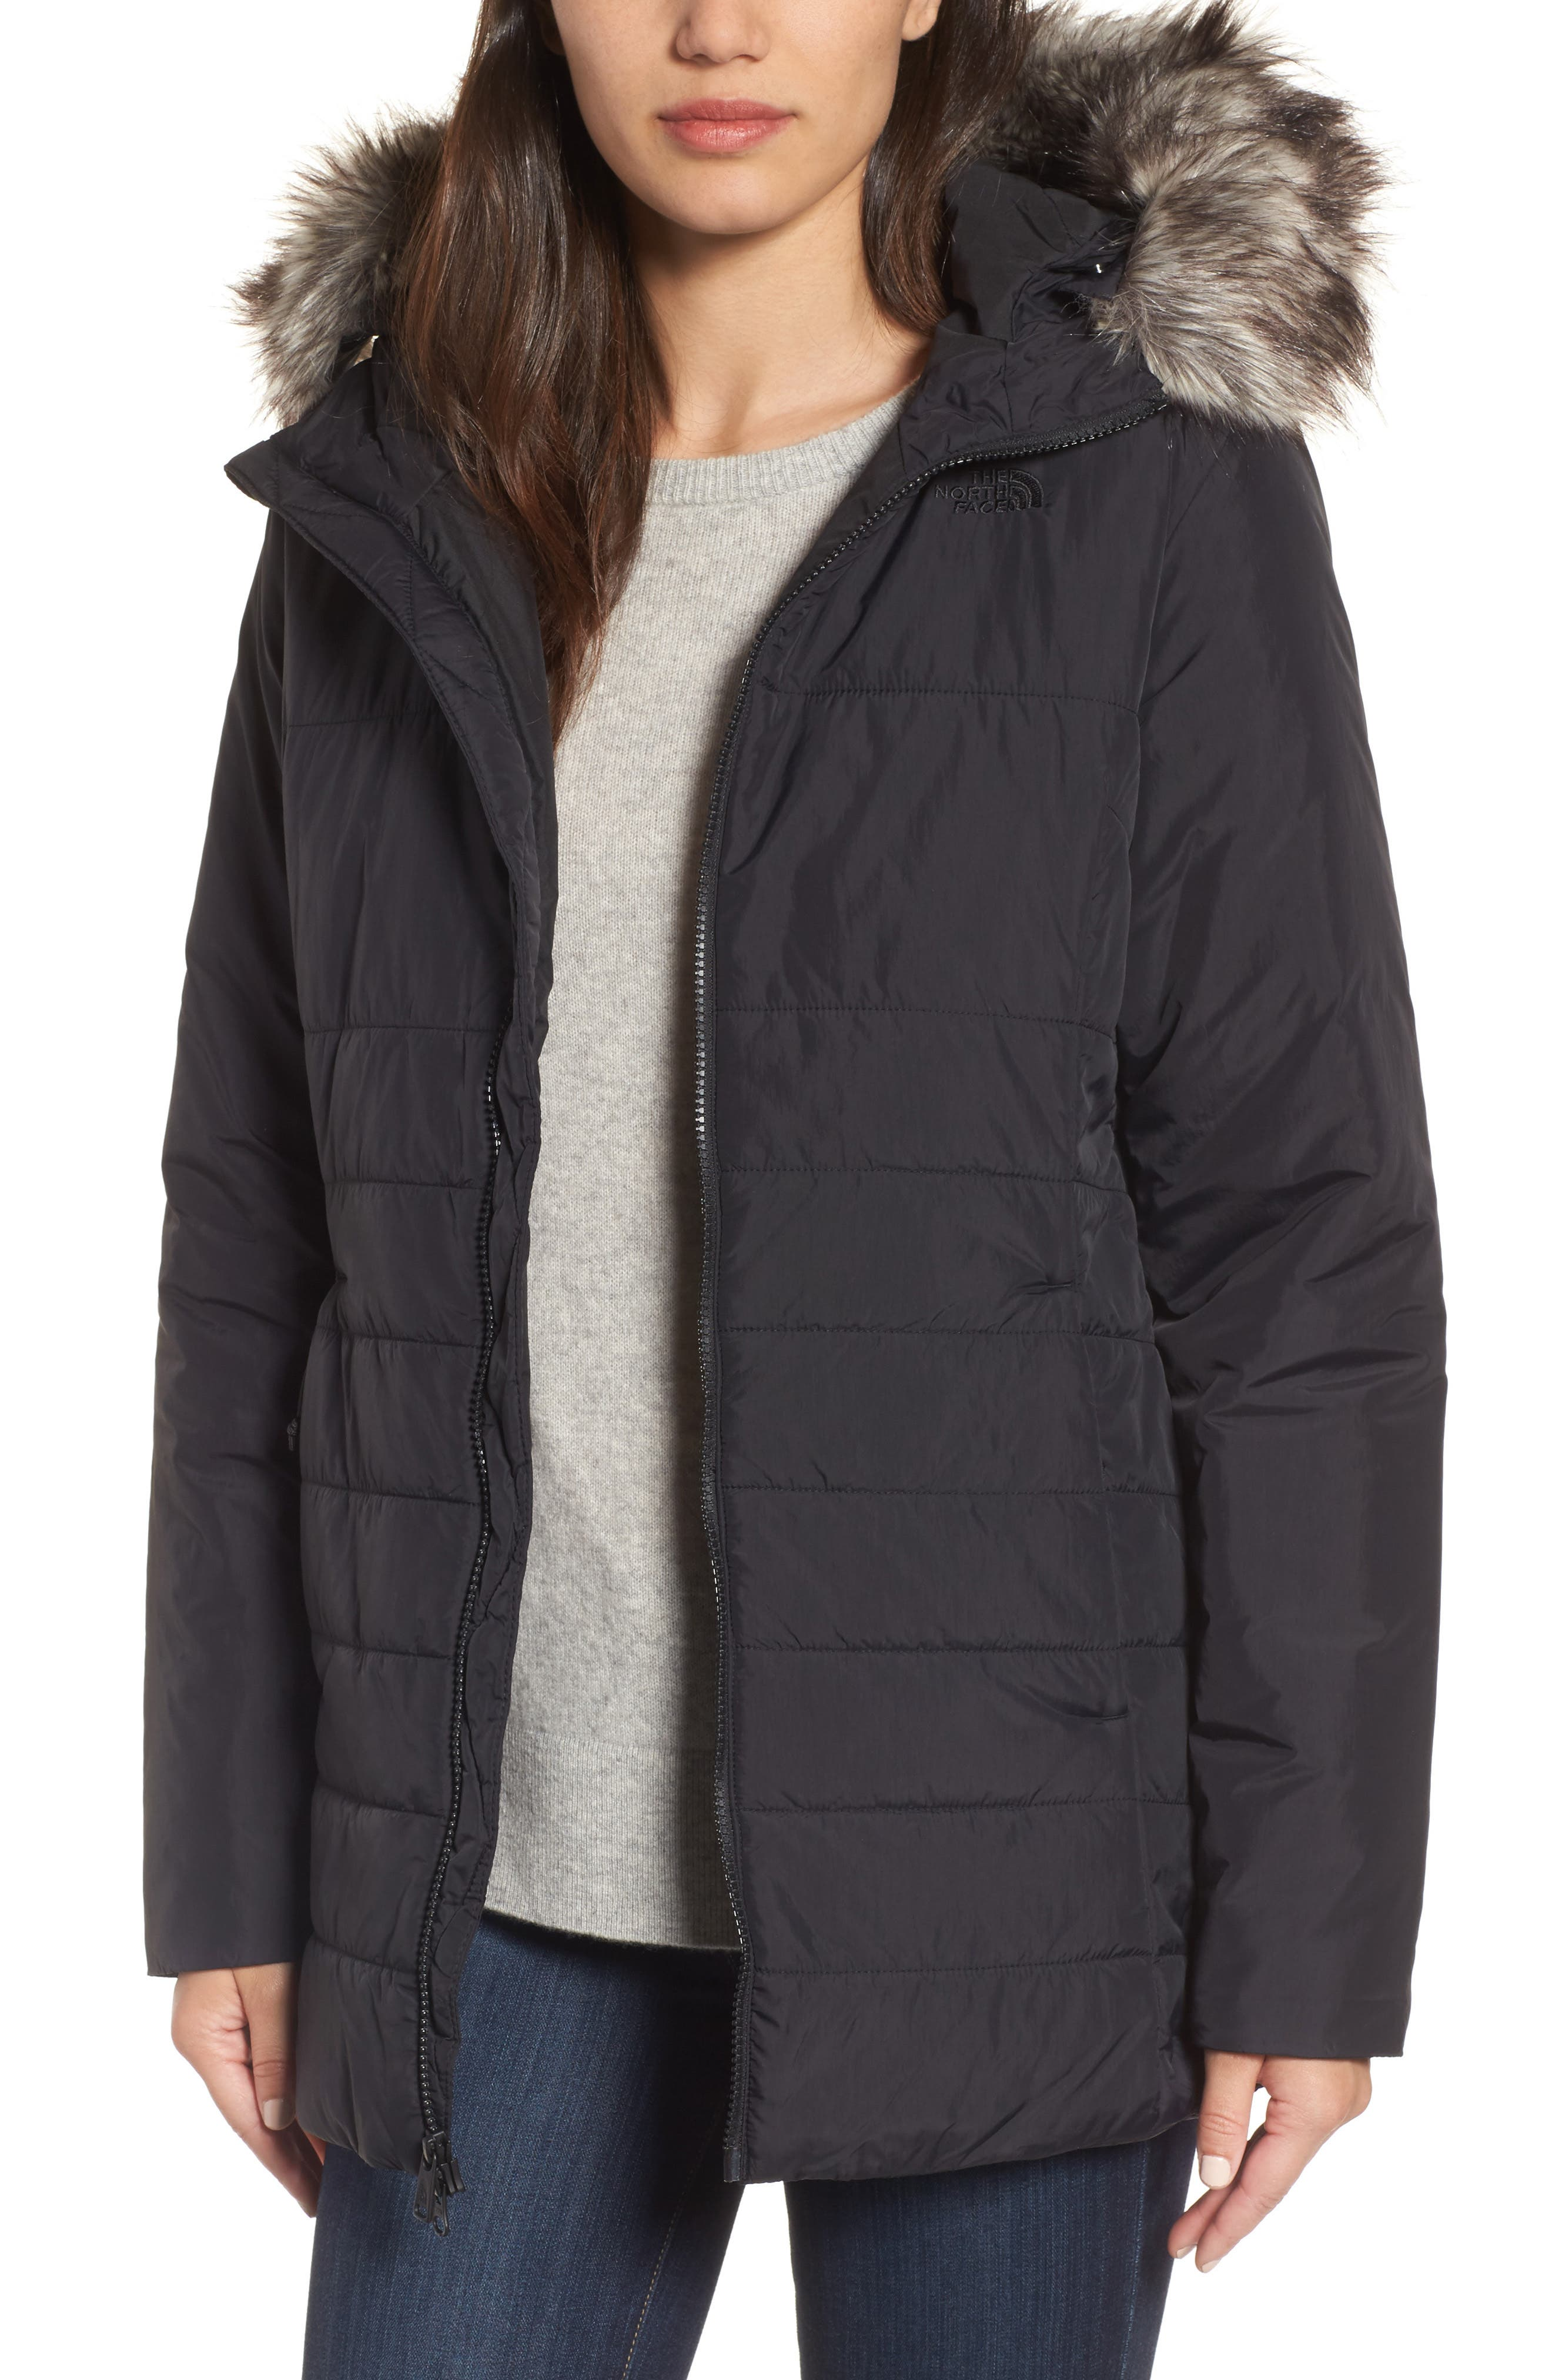 Alternate Image 1 Selected - The North Face Harway Heatseeker™ Water-Resistant Jacket with Faux Fur Trim